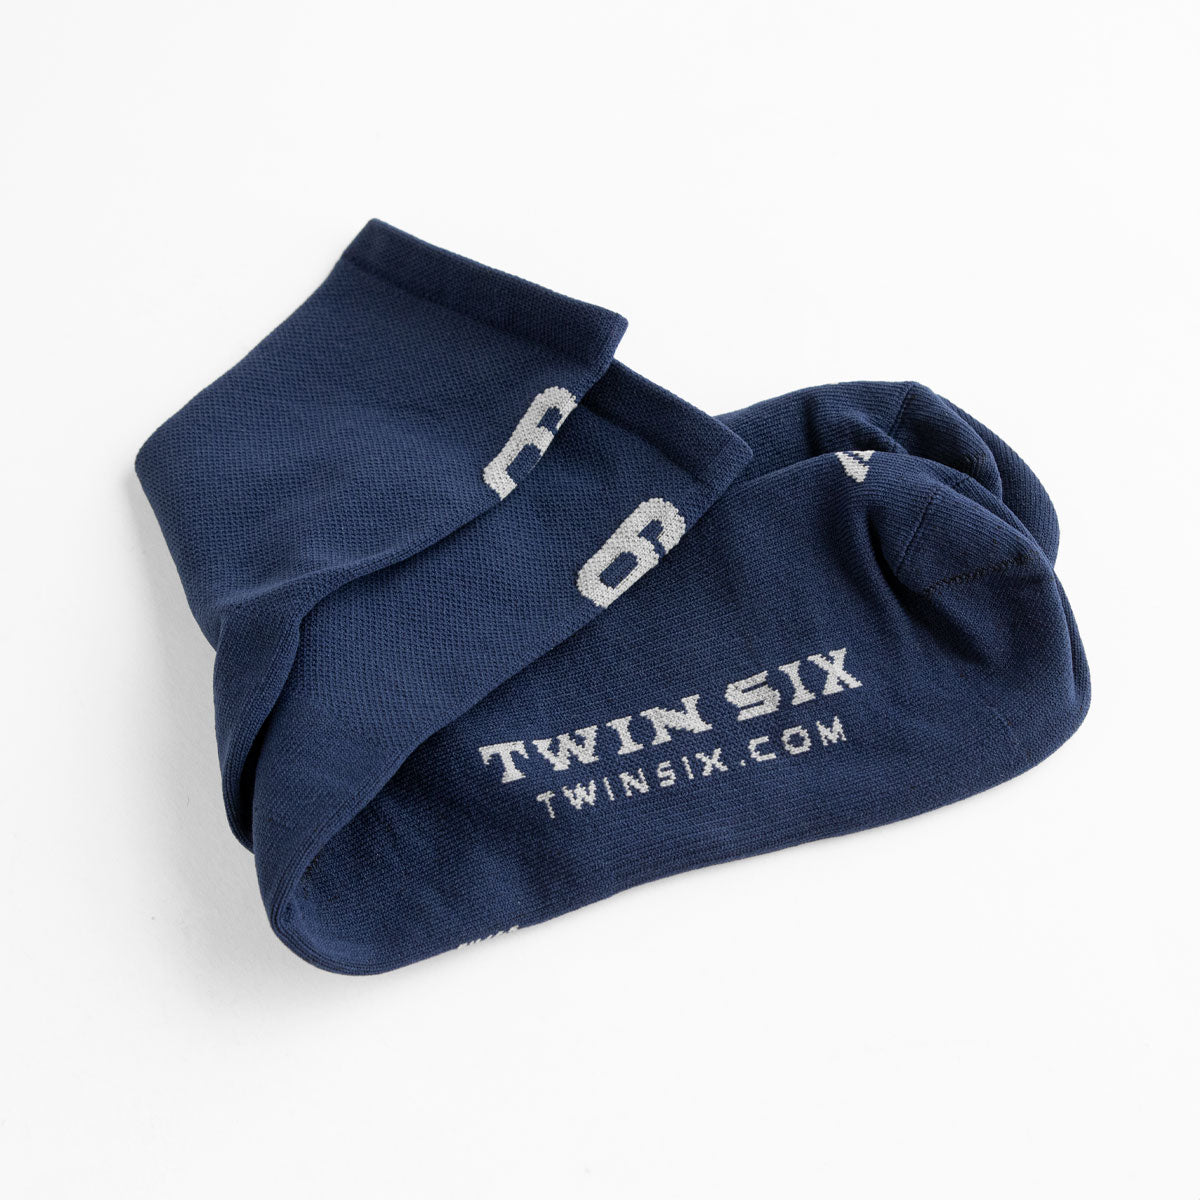 Standard Socks (NAVY)